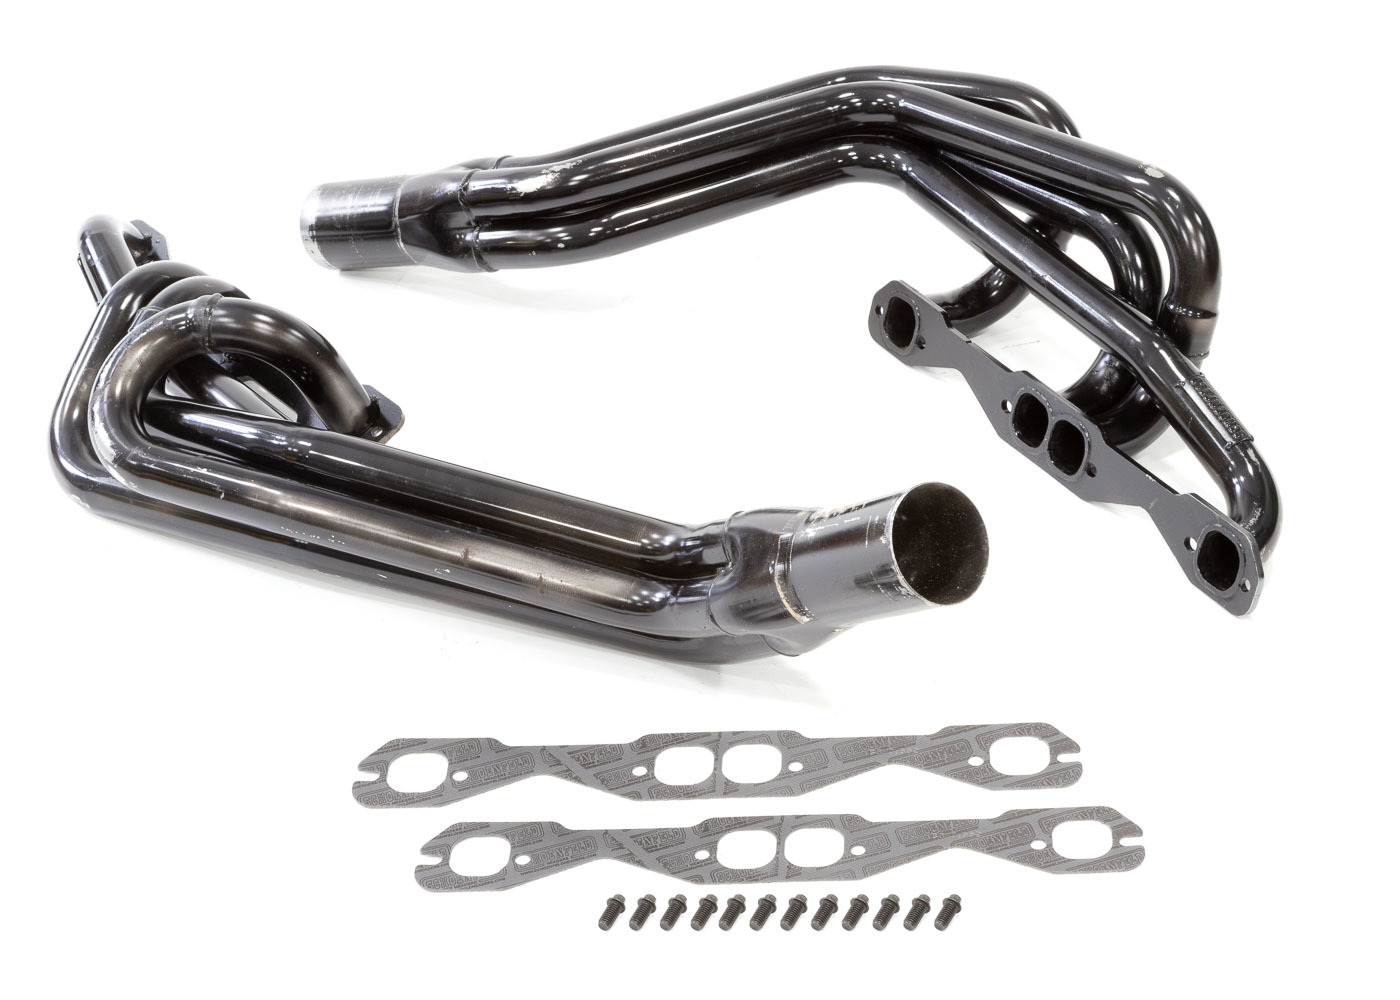 Schoenfeld 145CM2 Headers, Conventional Crossover, 1-5/8 in Primary, 3 in Collector, Steel, Black Paint, 602 Crate, Small Block Chevy, Kit